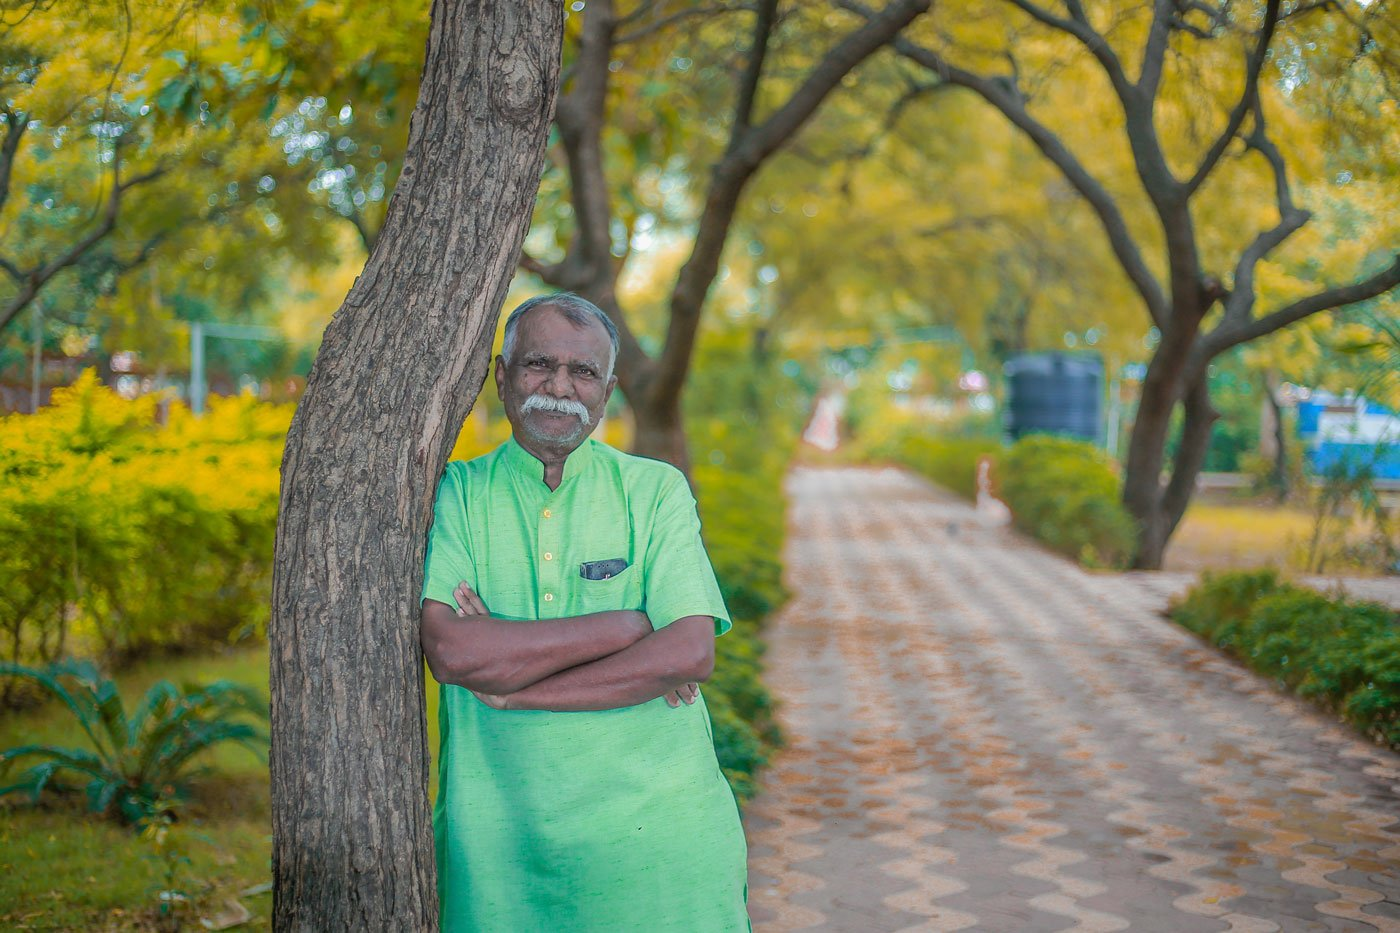 From Tamil writer Cho Dharman, an invaluable oral history of how villages over centuries engaged with viruses, plagues and epidemics – relating that to the current Covid-19 pandemic and life under lockdown